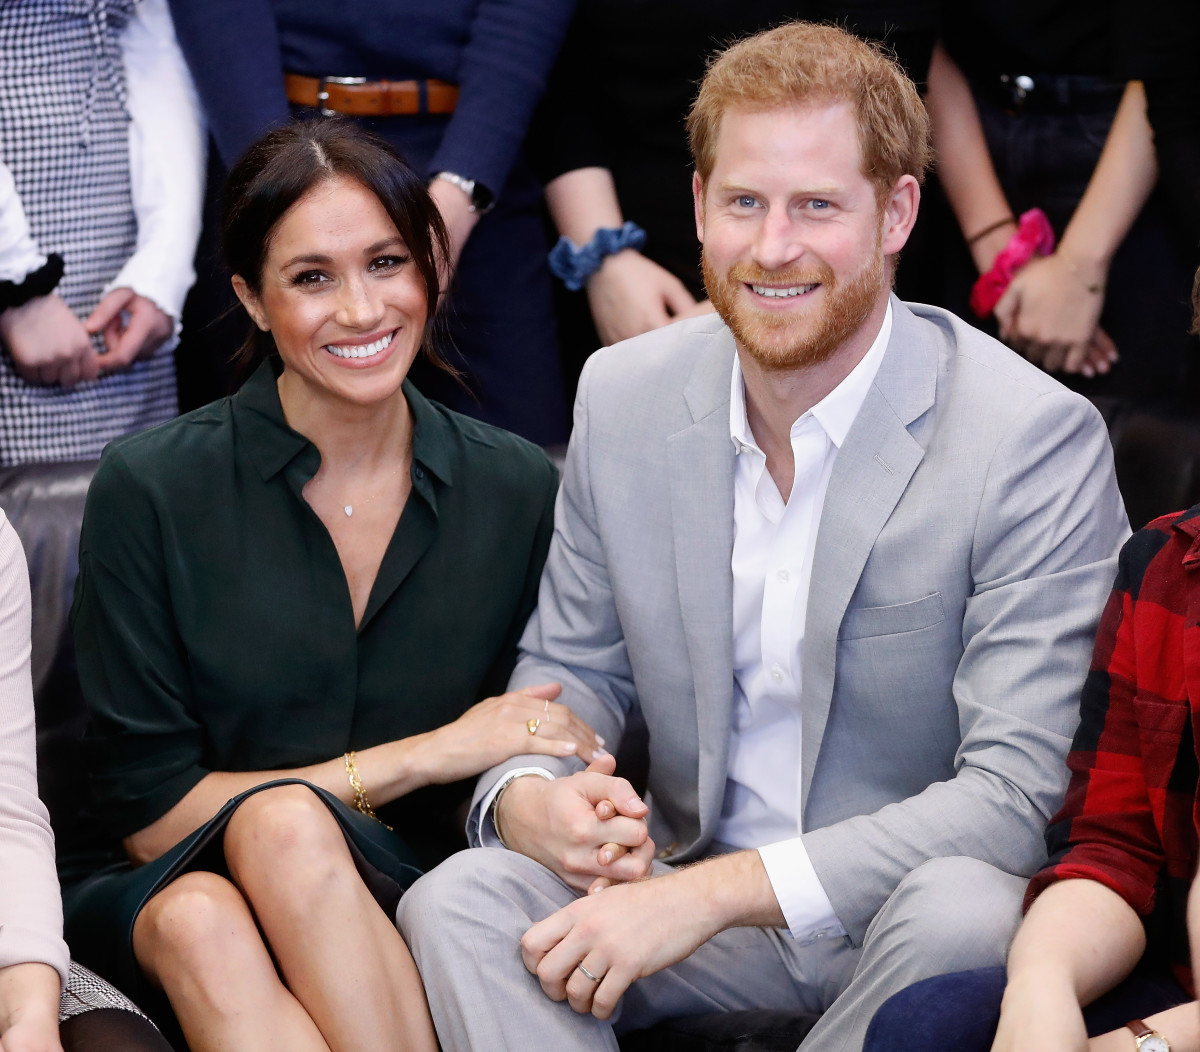 Meghan Markle, Duchess of Sussex and Prince Harry, Duke of Sussex, during a visit to the Peacehaven, Sussex on Oct. 3. Photo: Chris Jackson/Getty Images